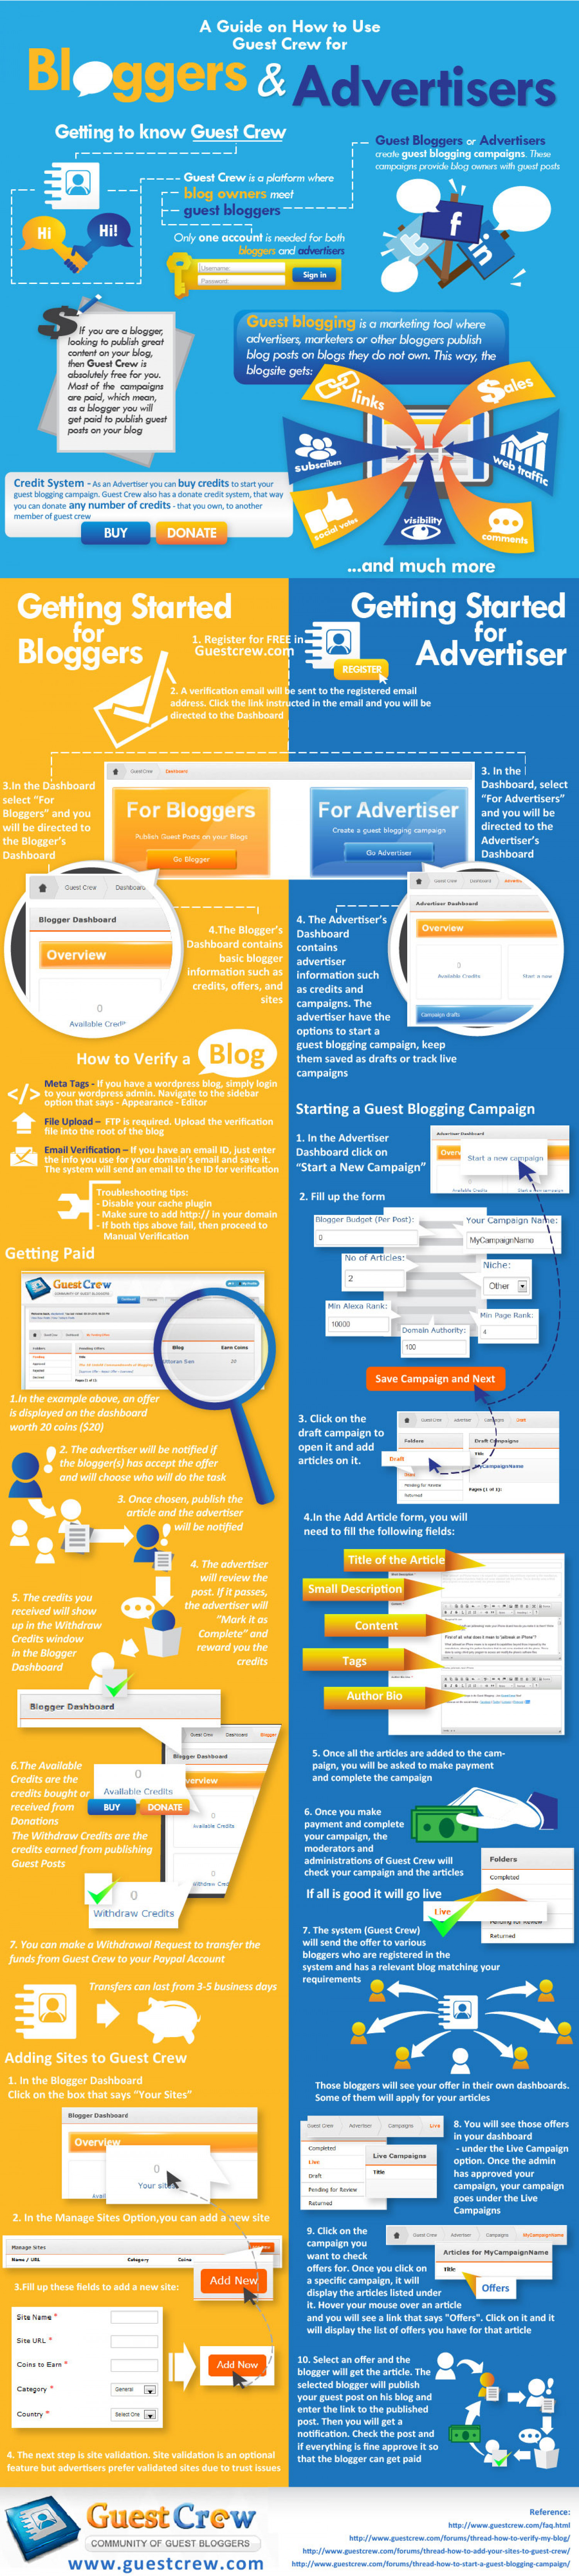 A Guide on How to Use Guest Crew for Bloggers & Advertisers Infographic